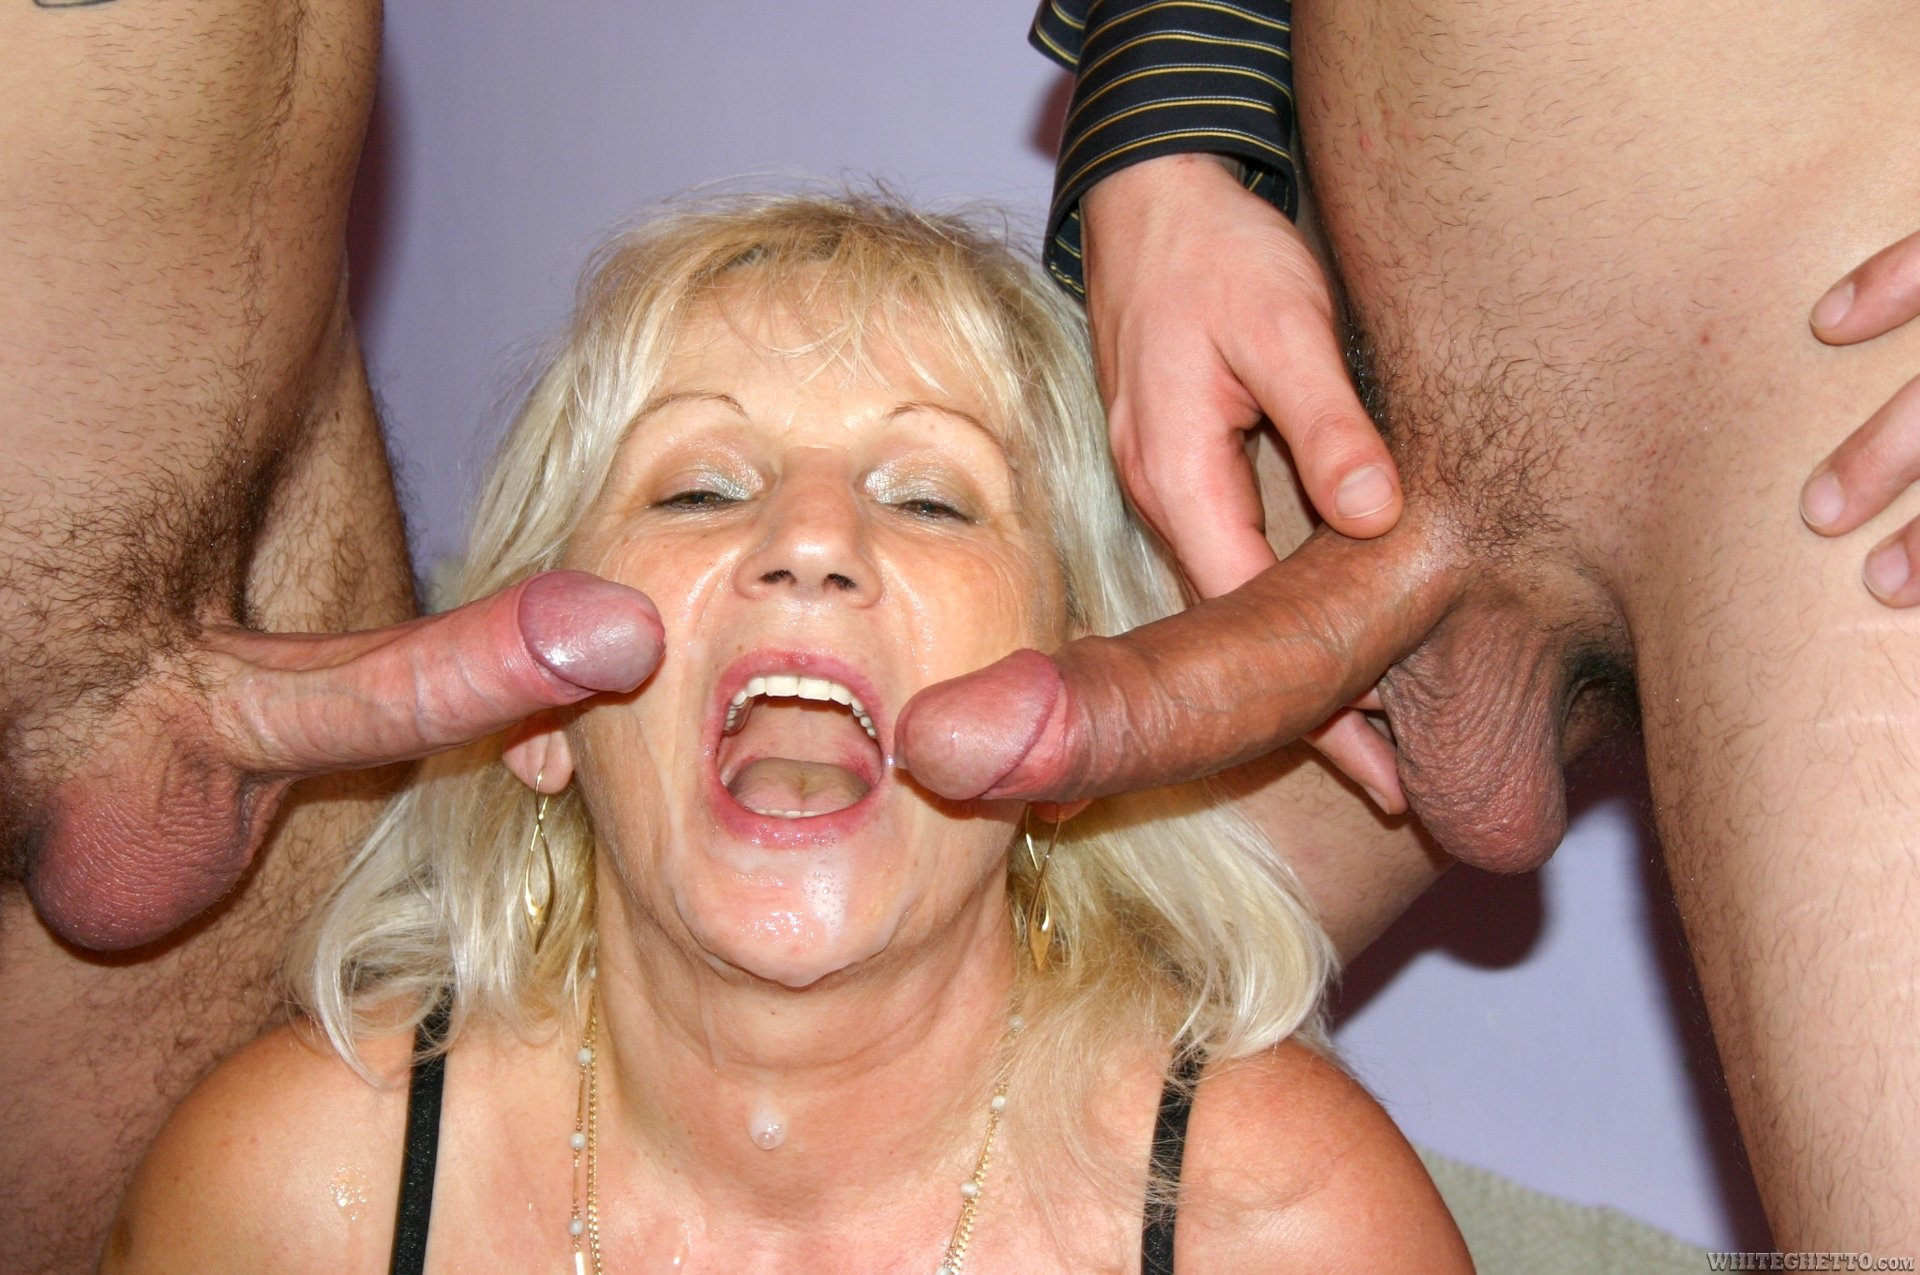 Granny taking cum from strangers at the beach 7